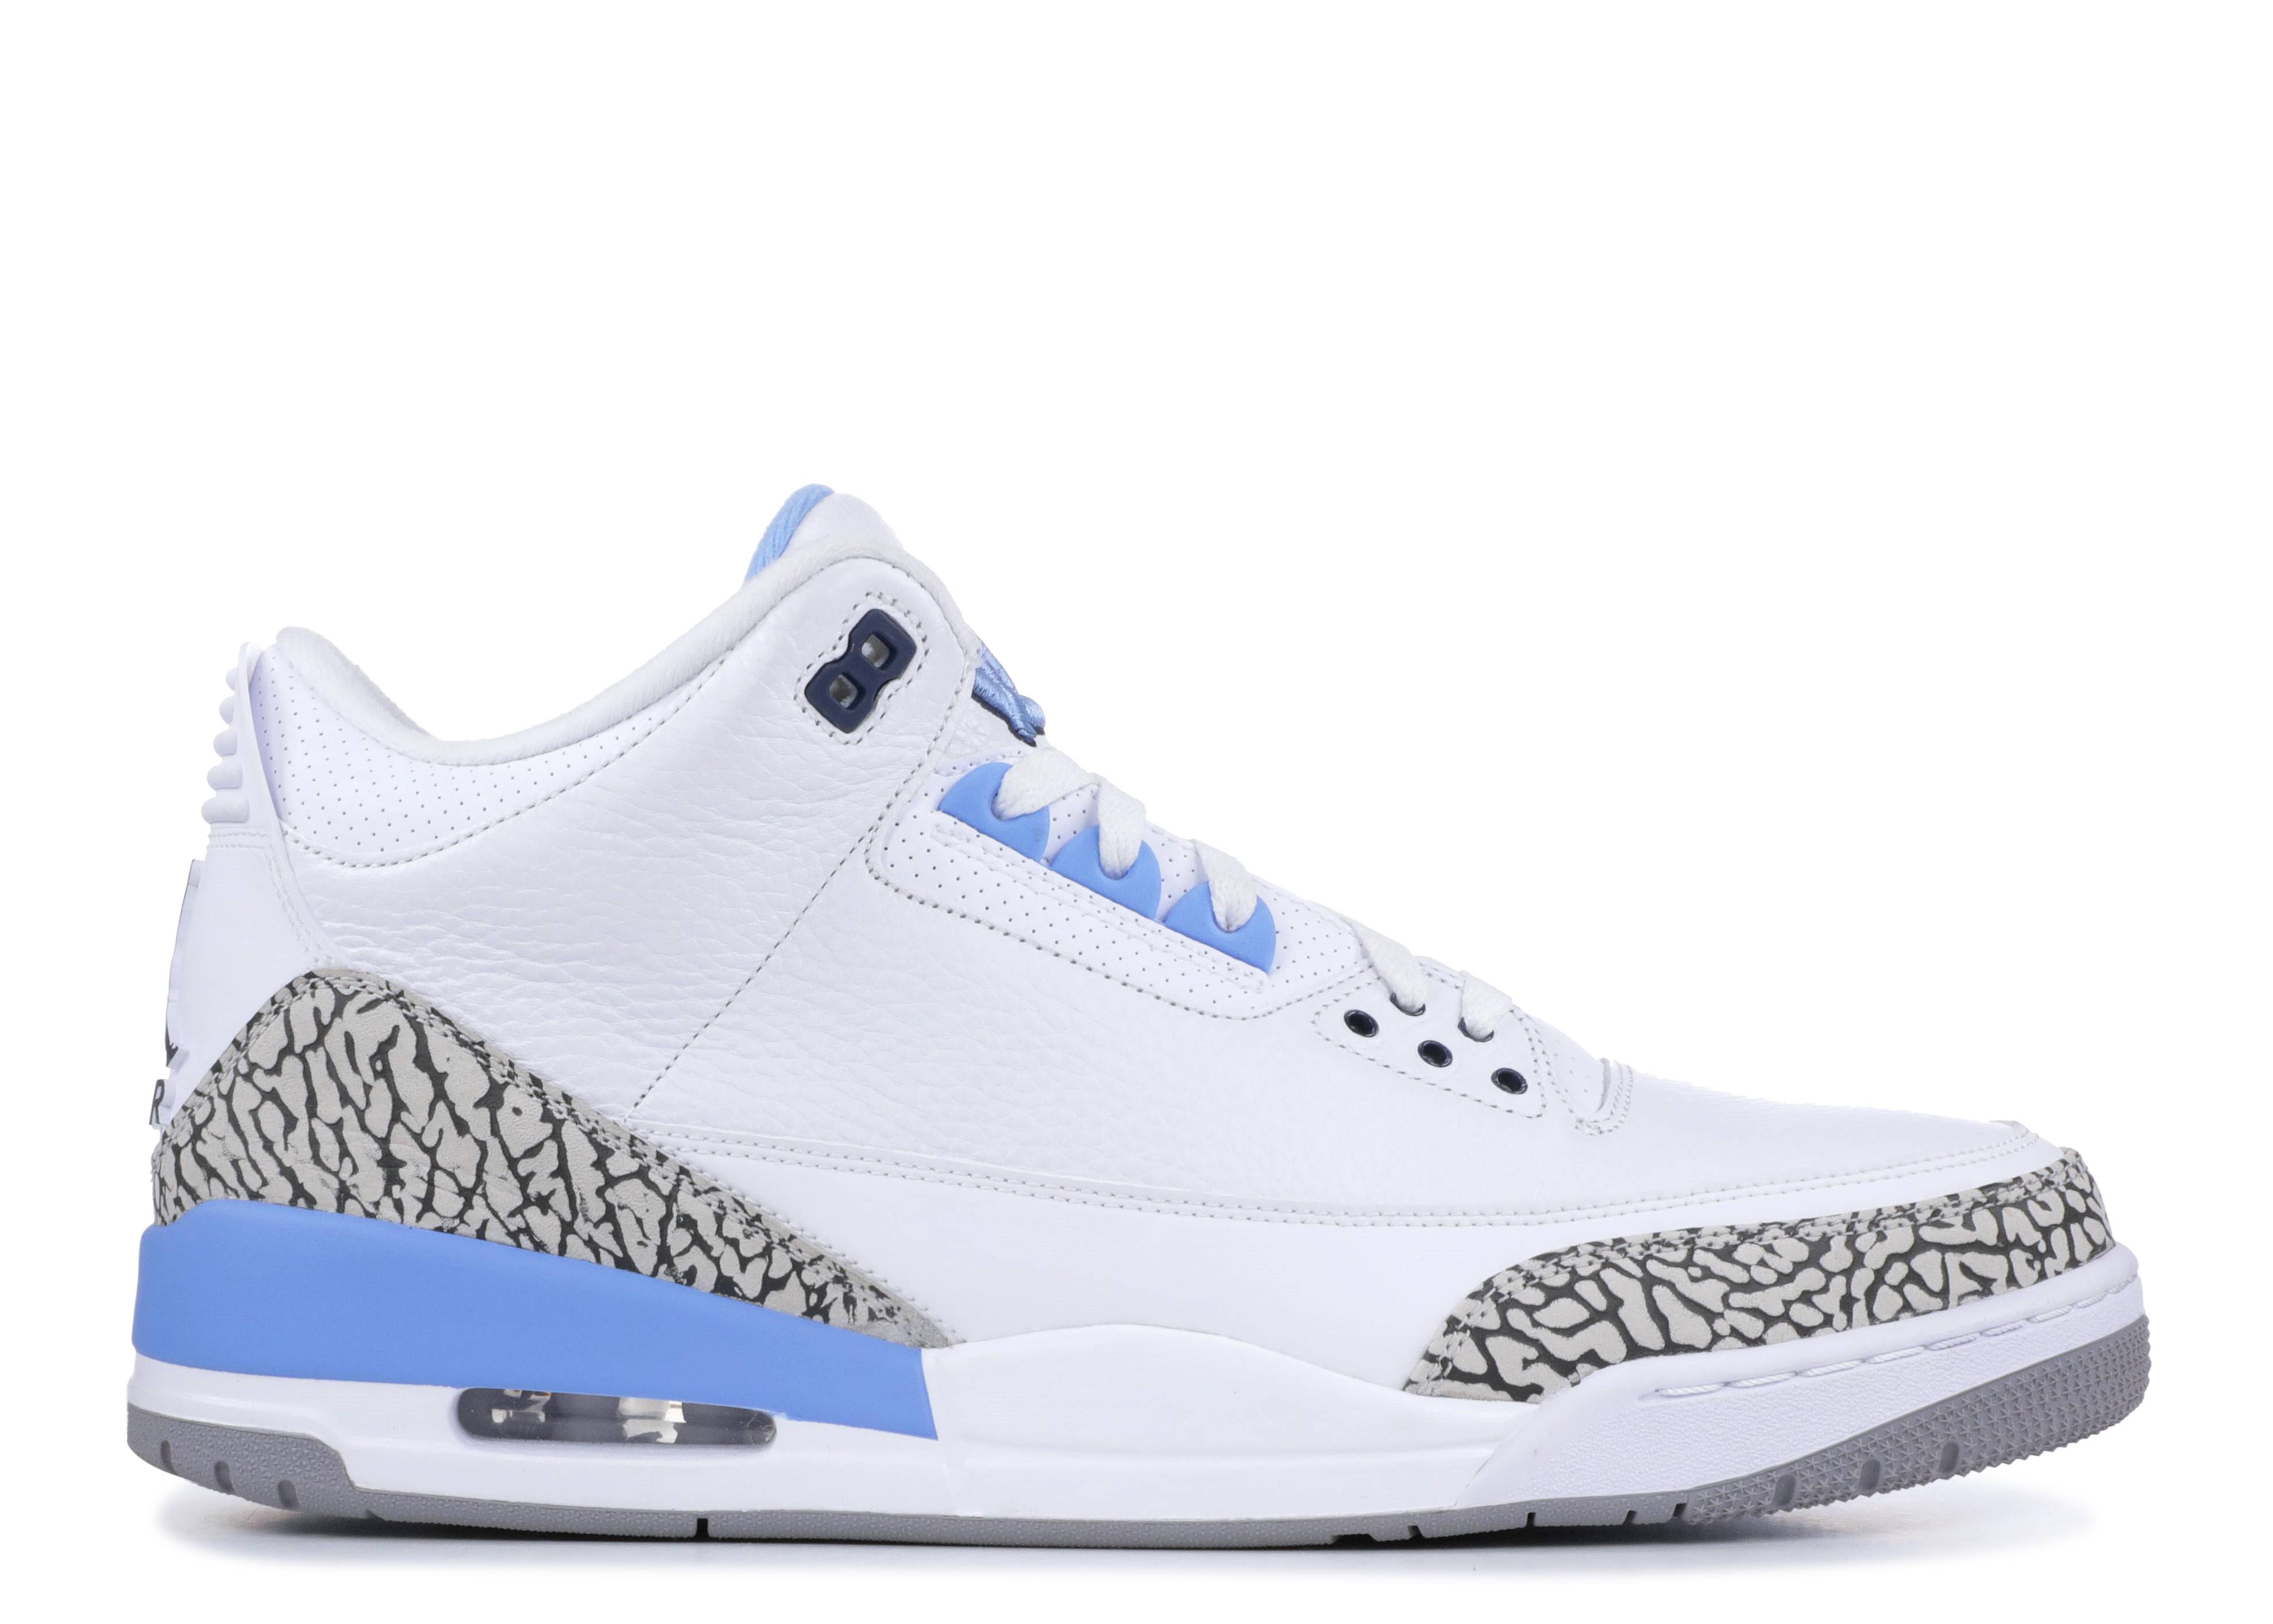 8e5c3c0fed93 AIR JORDAN 3 RETRO